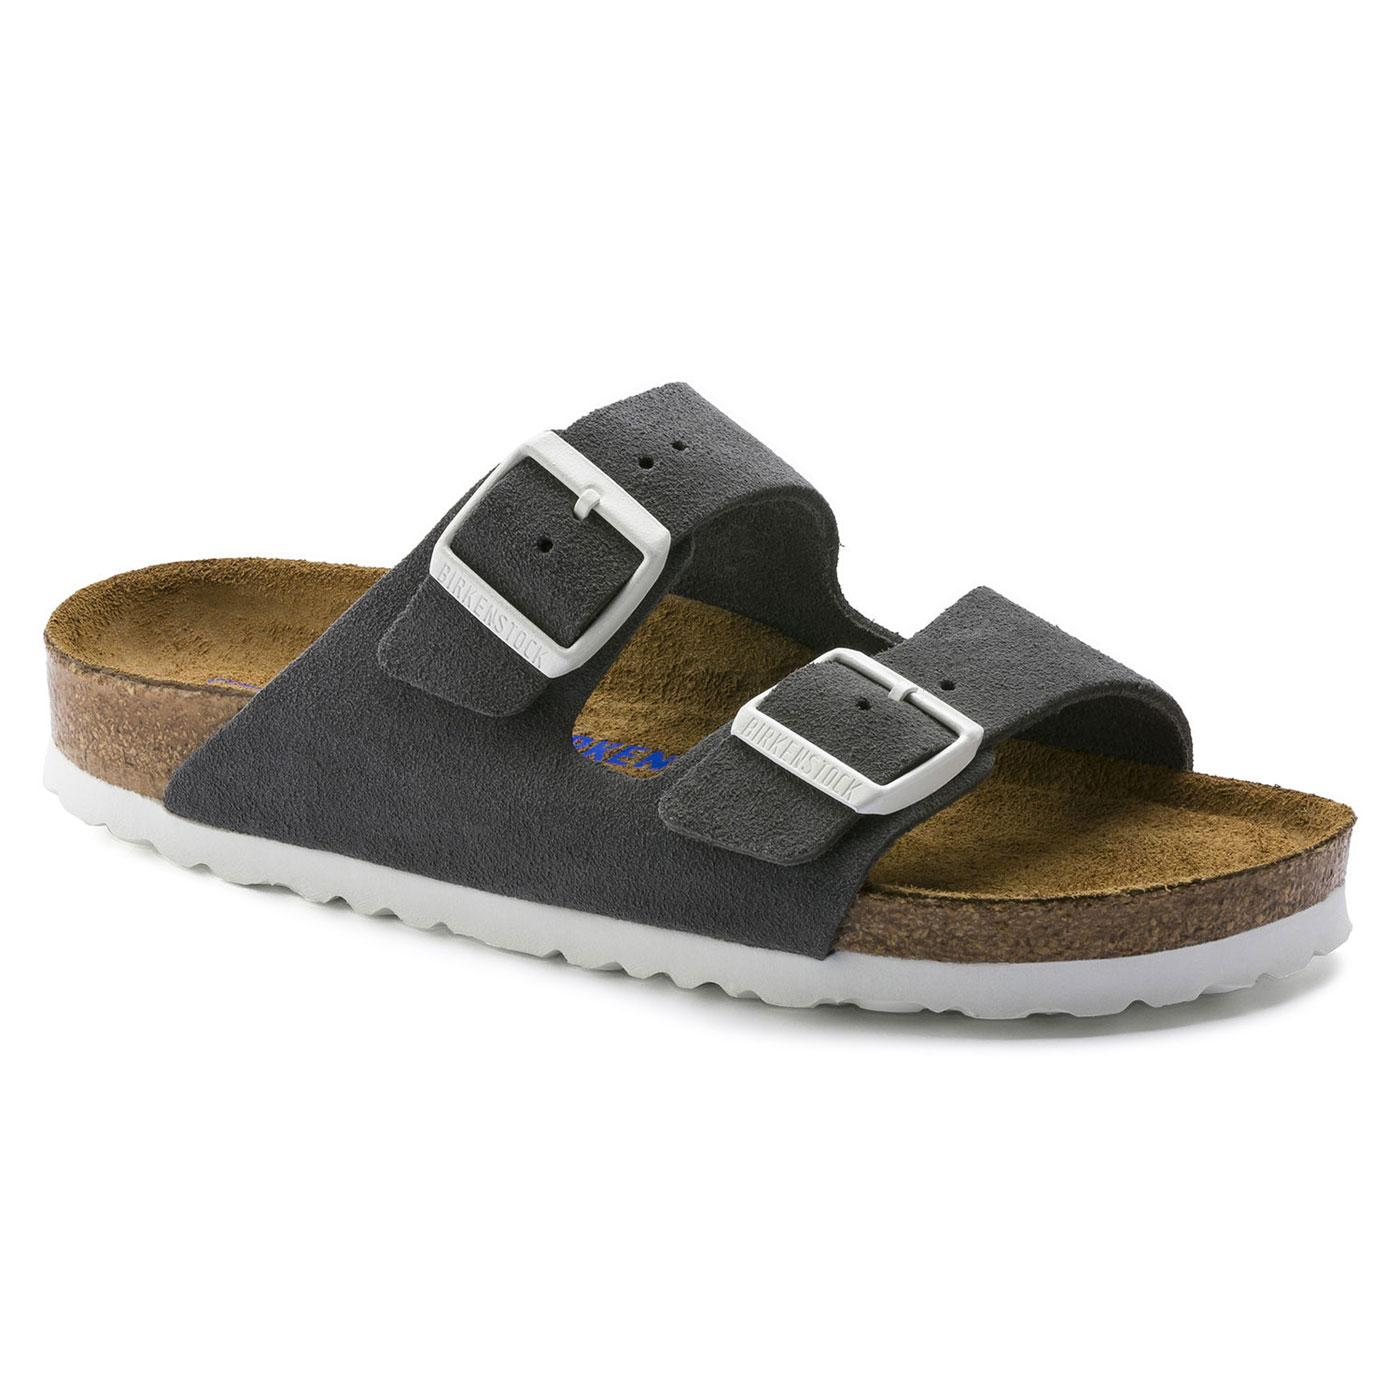 Arizona Soft Footbed BIRKENSTOCK Retro Sandals G